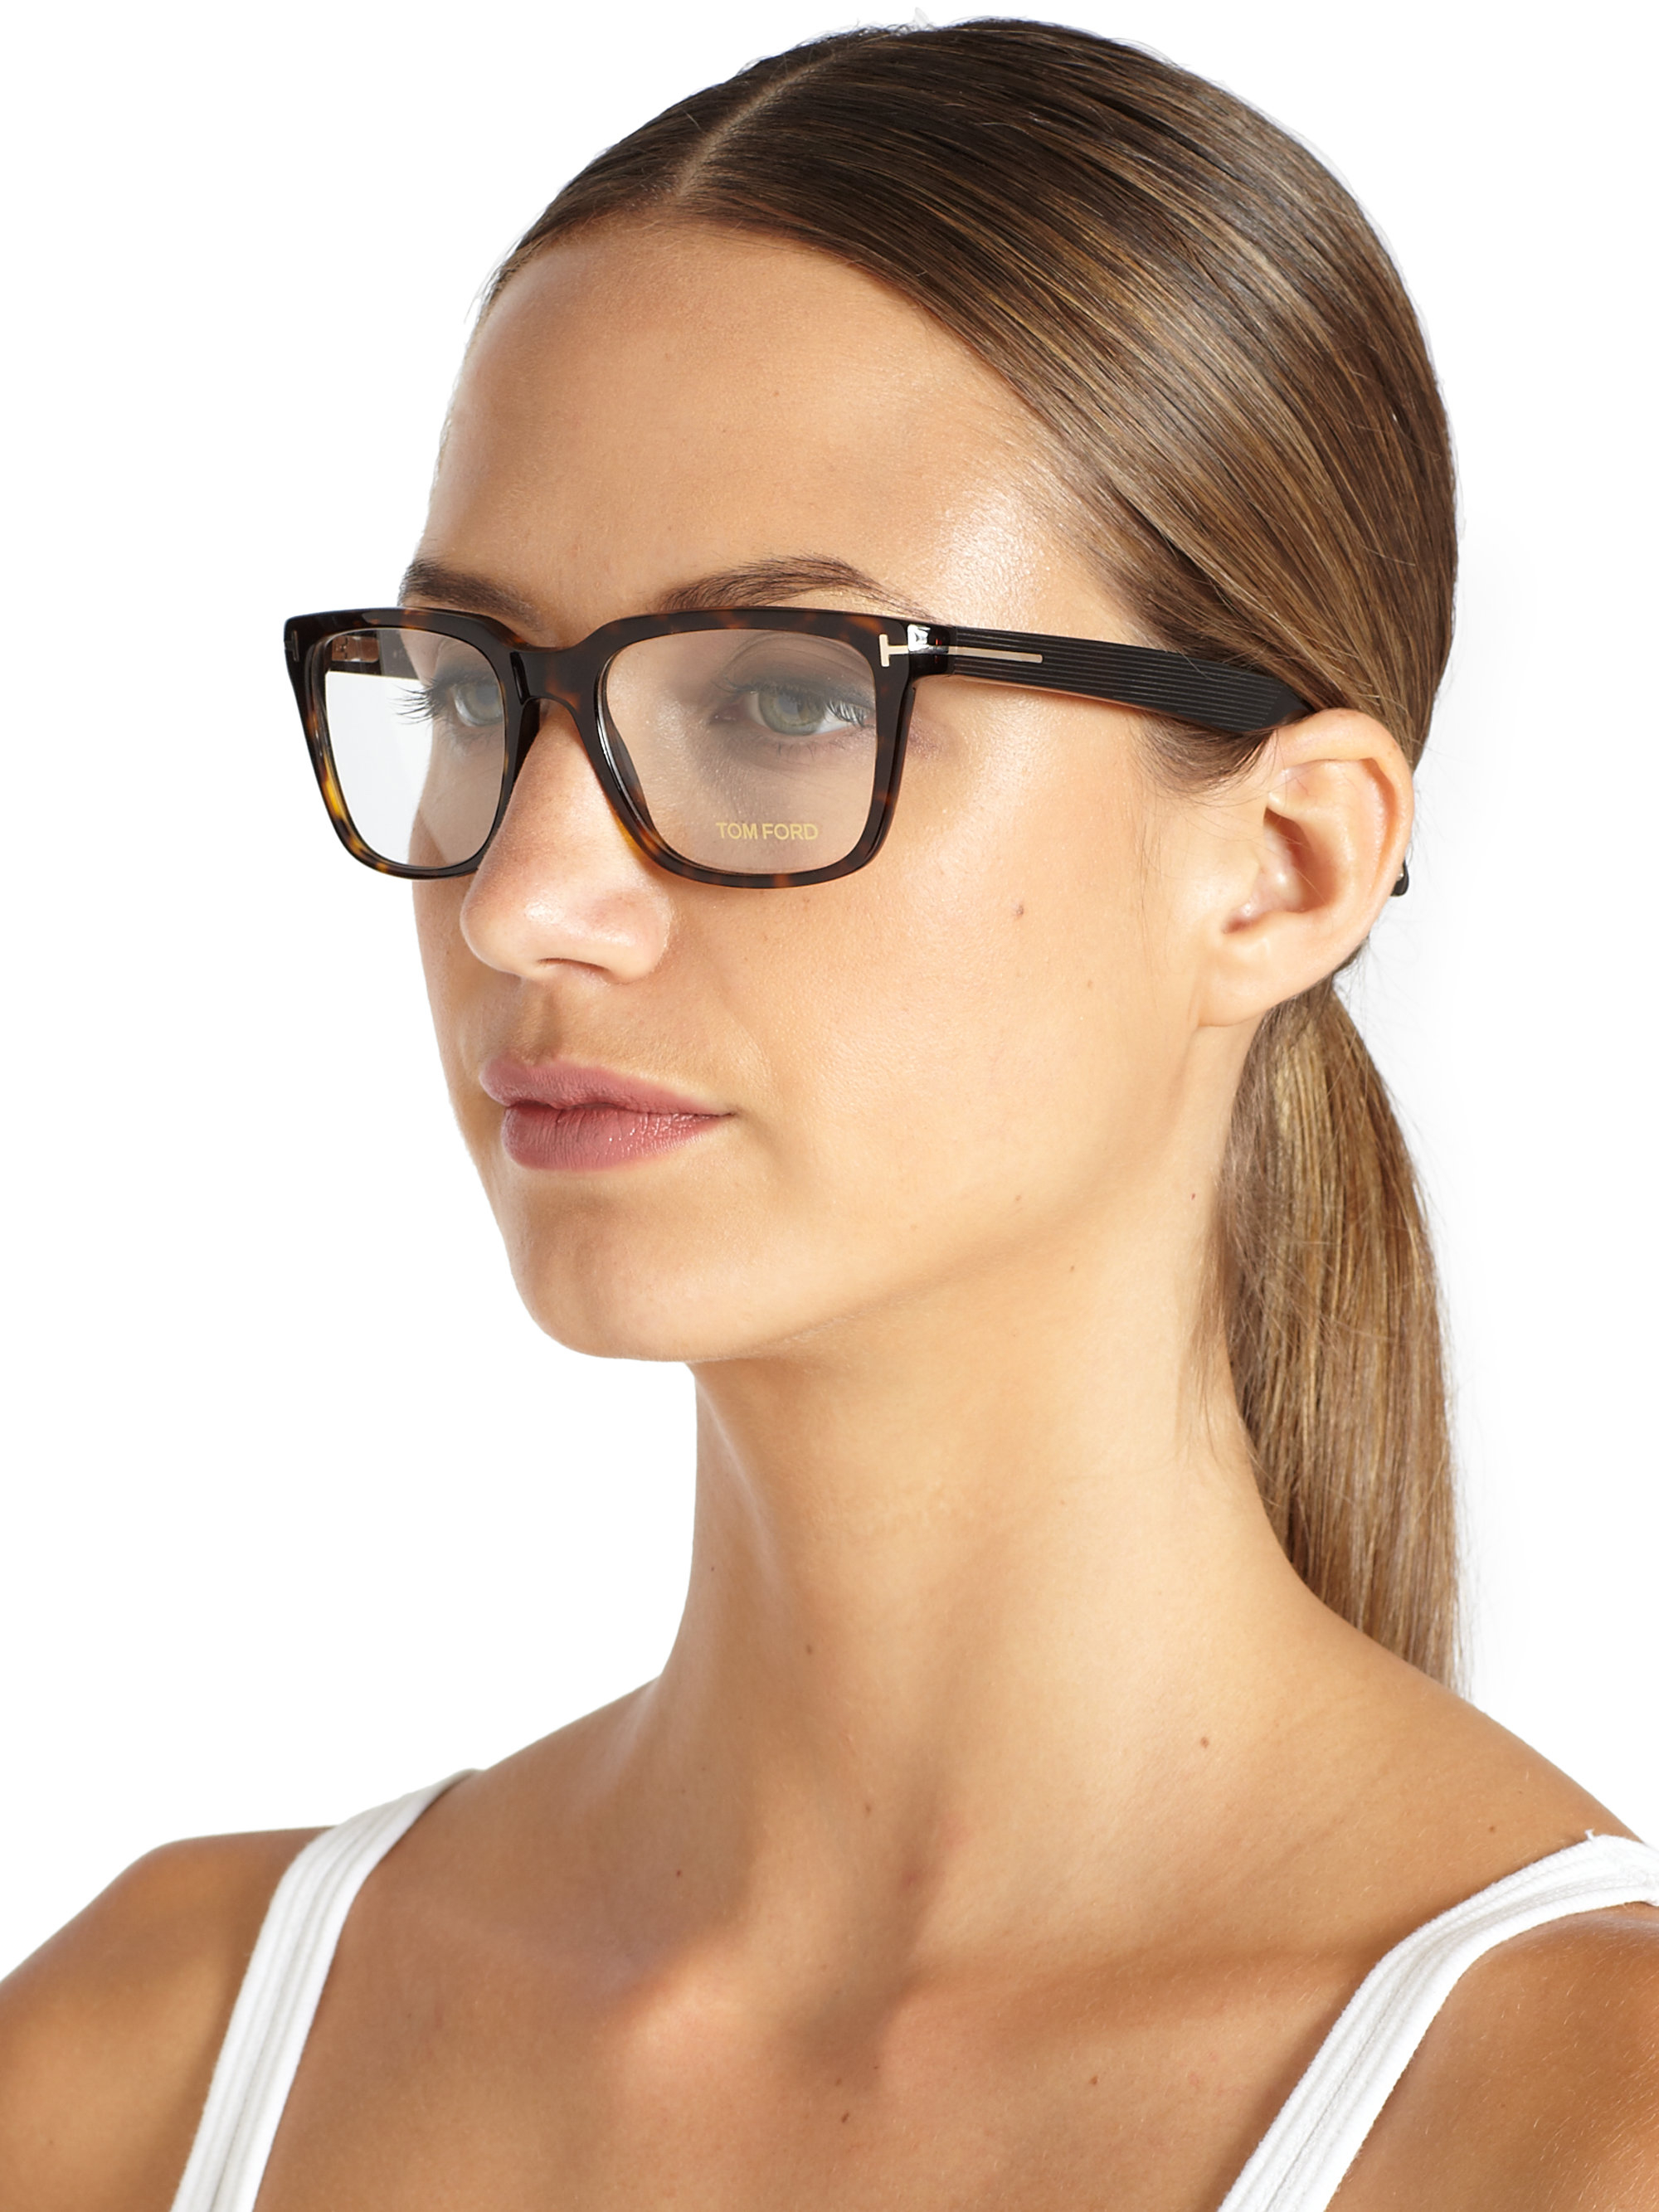 9e2d84a2d16c9 Tom Ford Square Optical Glasses in Brown for Men - Lyst